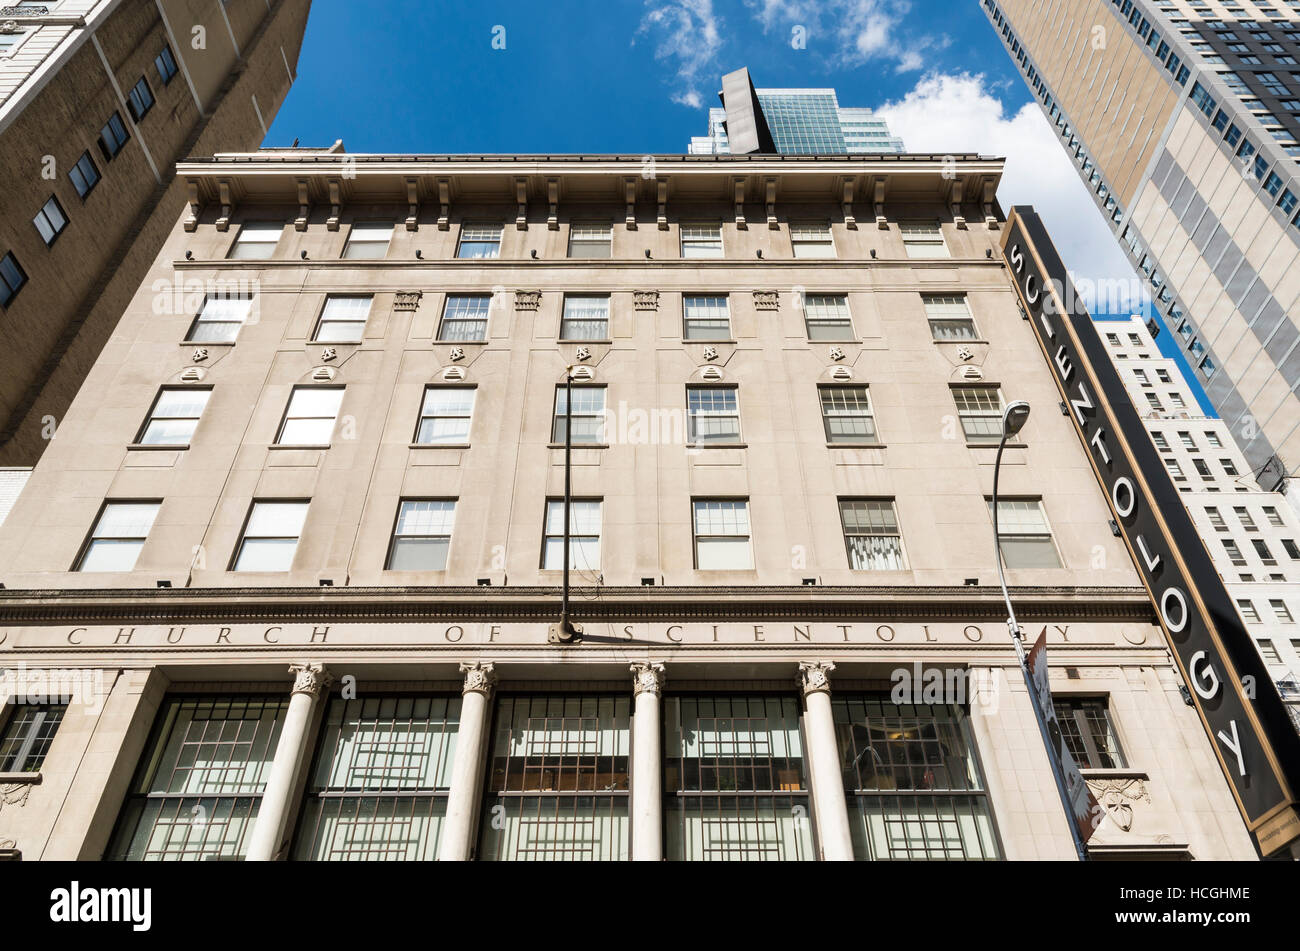 Exterior of the Church of Scientology building (227 W 46th St) in New York City - Stock Image